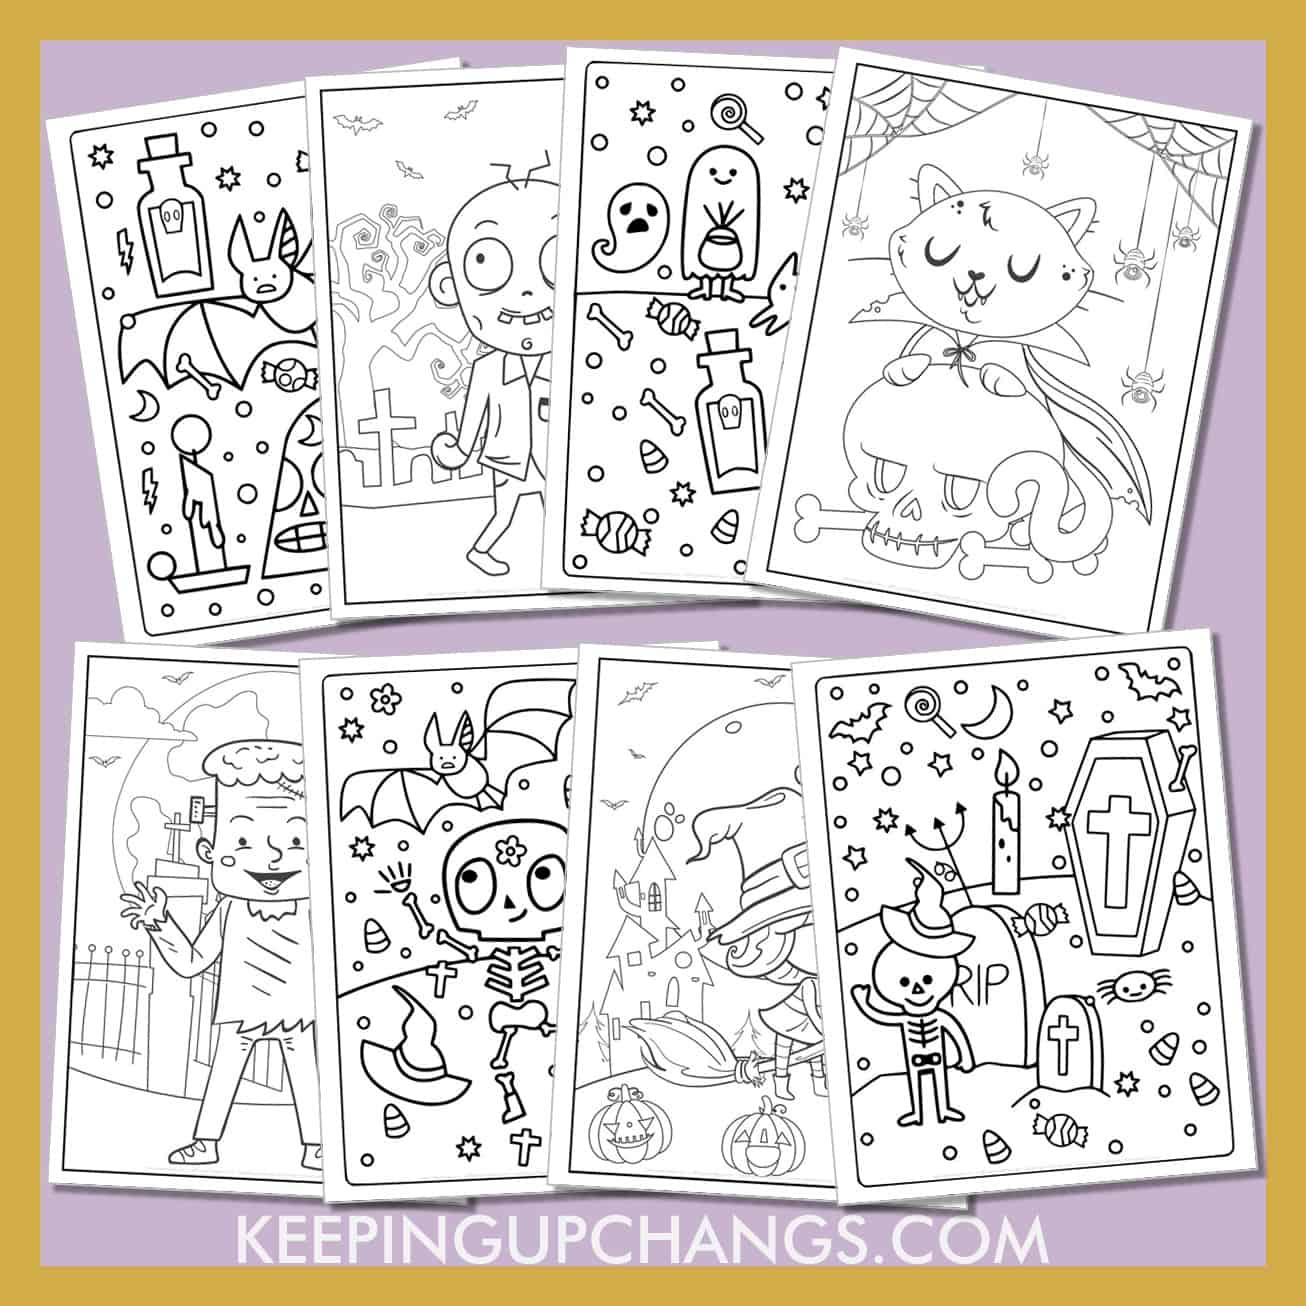 halloween for kids colouring sheets including bat, cat, witch, ghost, haunted house, zombie and more.